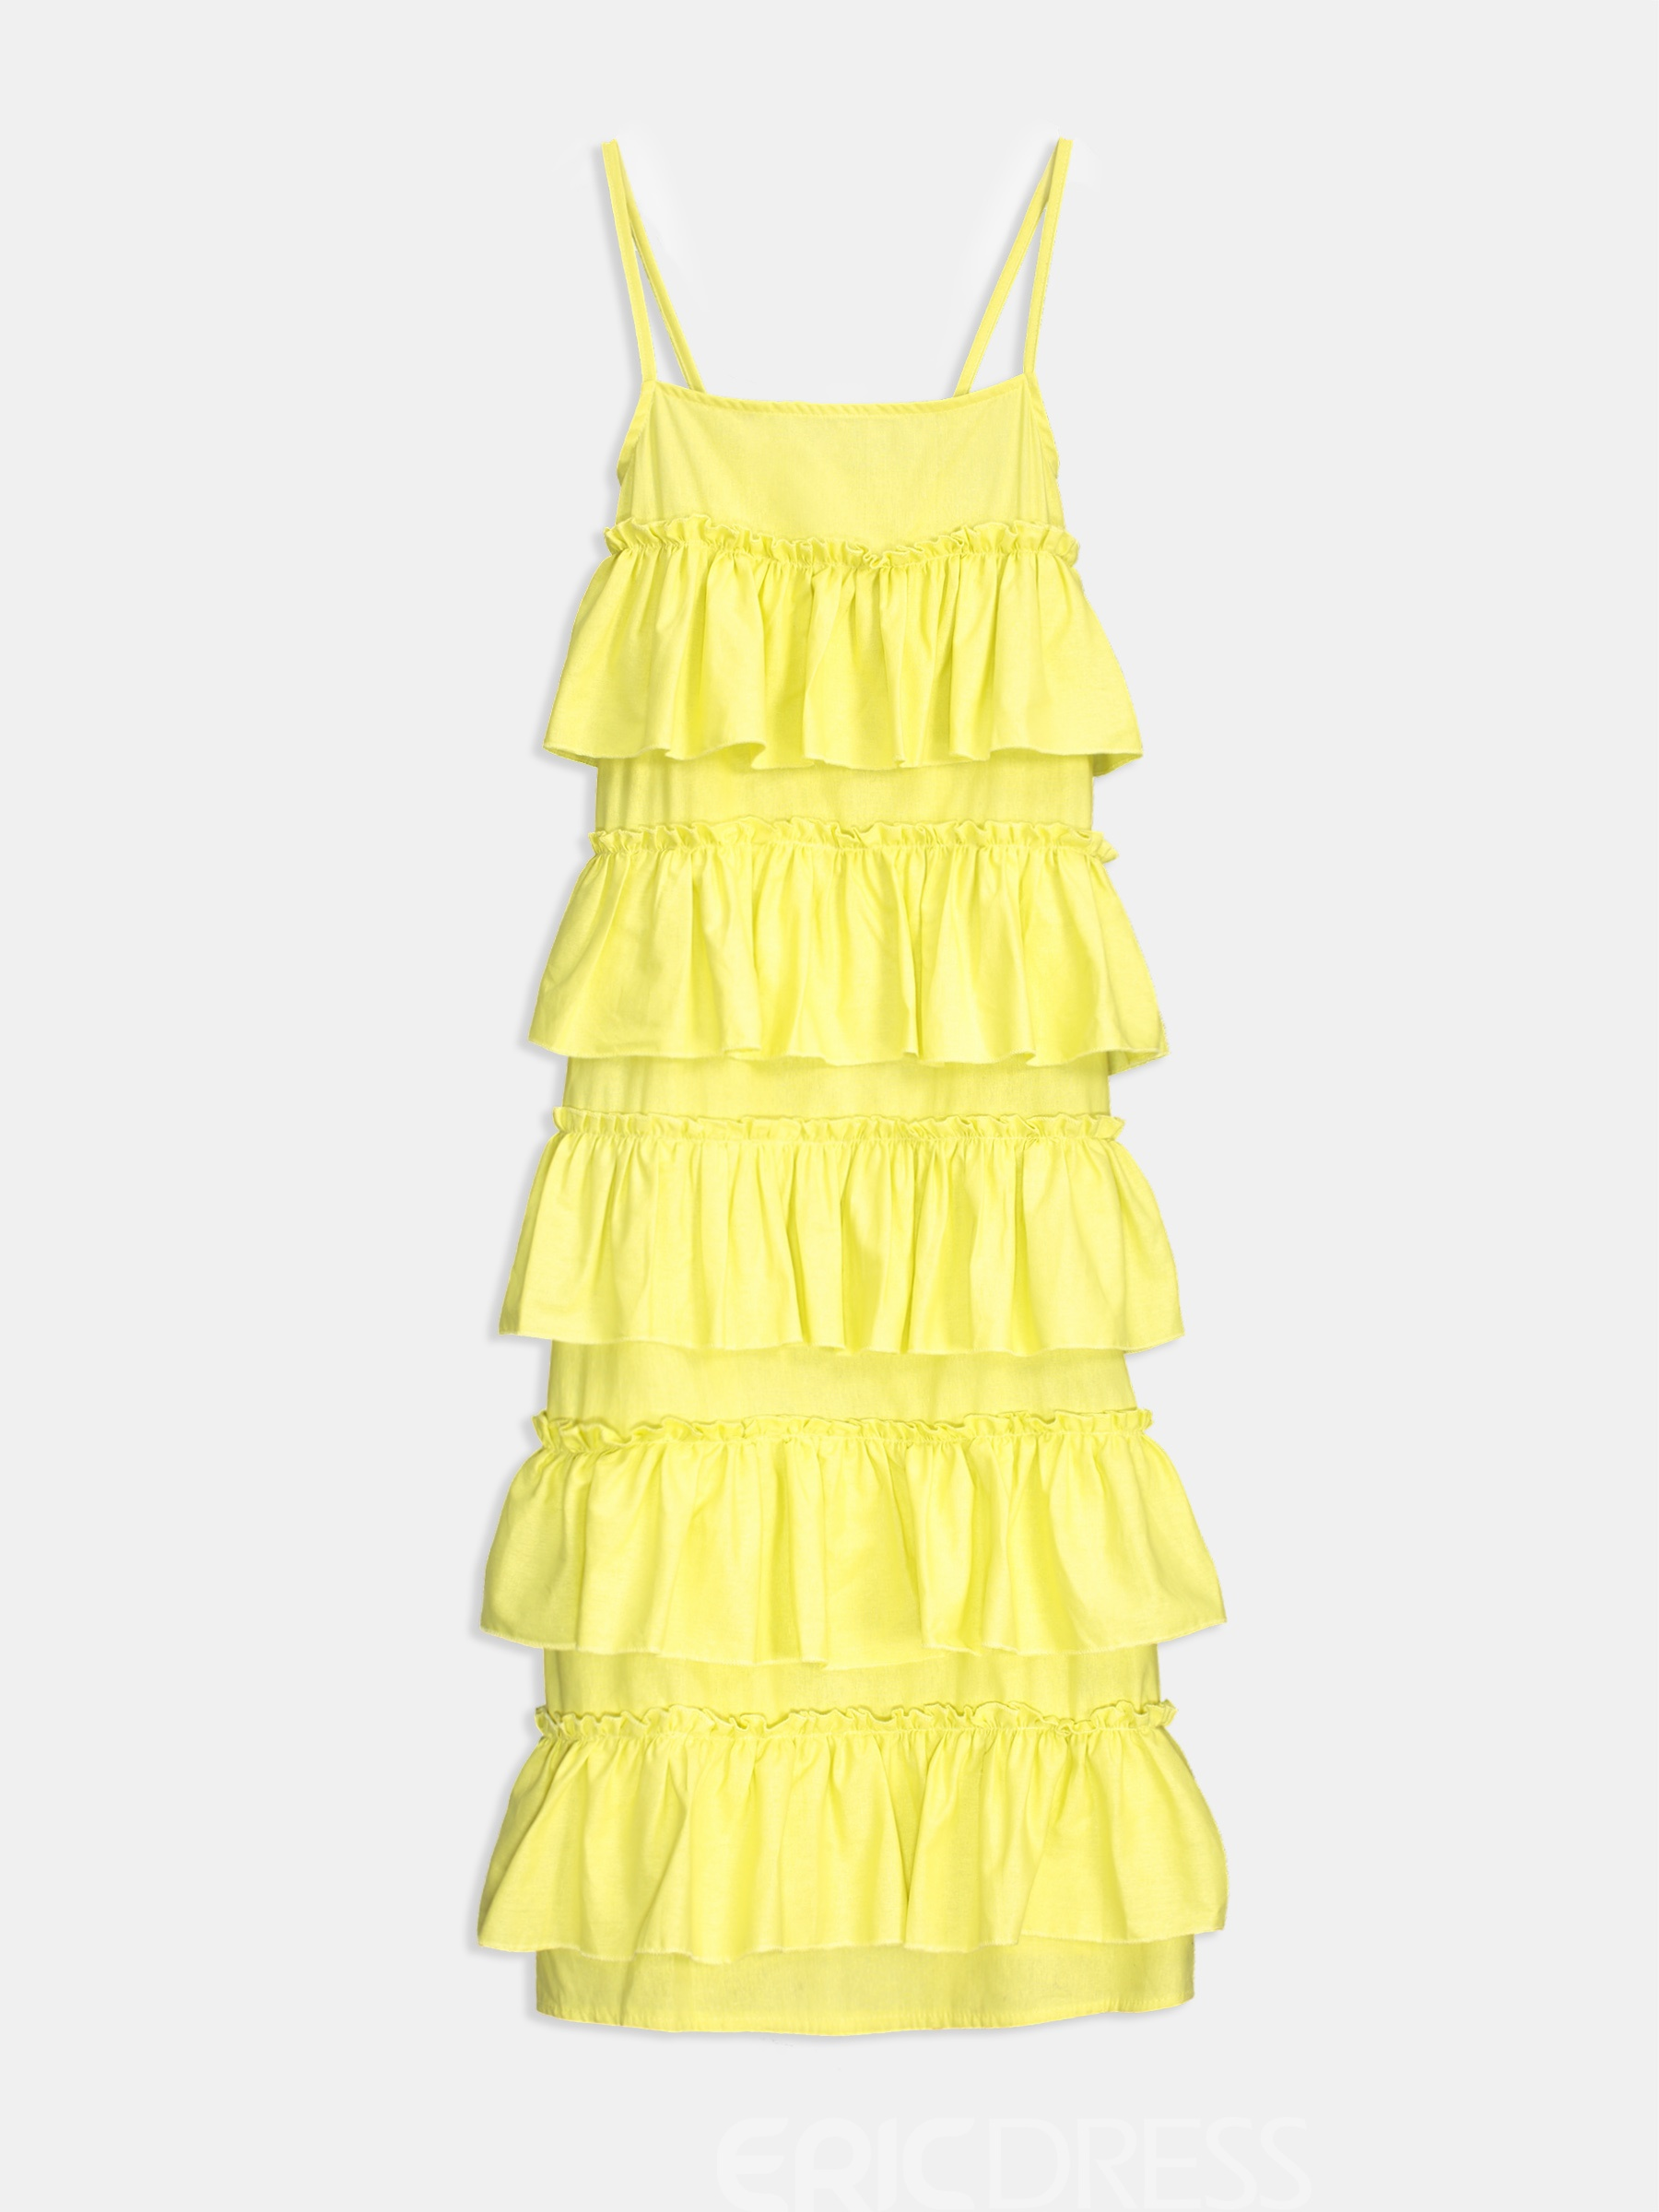 Ericdress Yellow Ruffles Pleated Wave Cut Layered Casual Dress 13297596